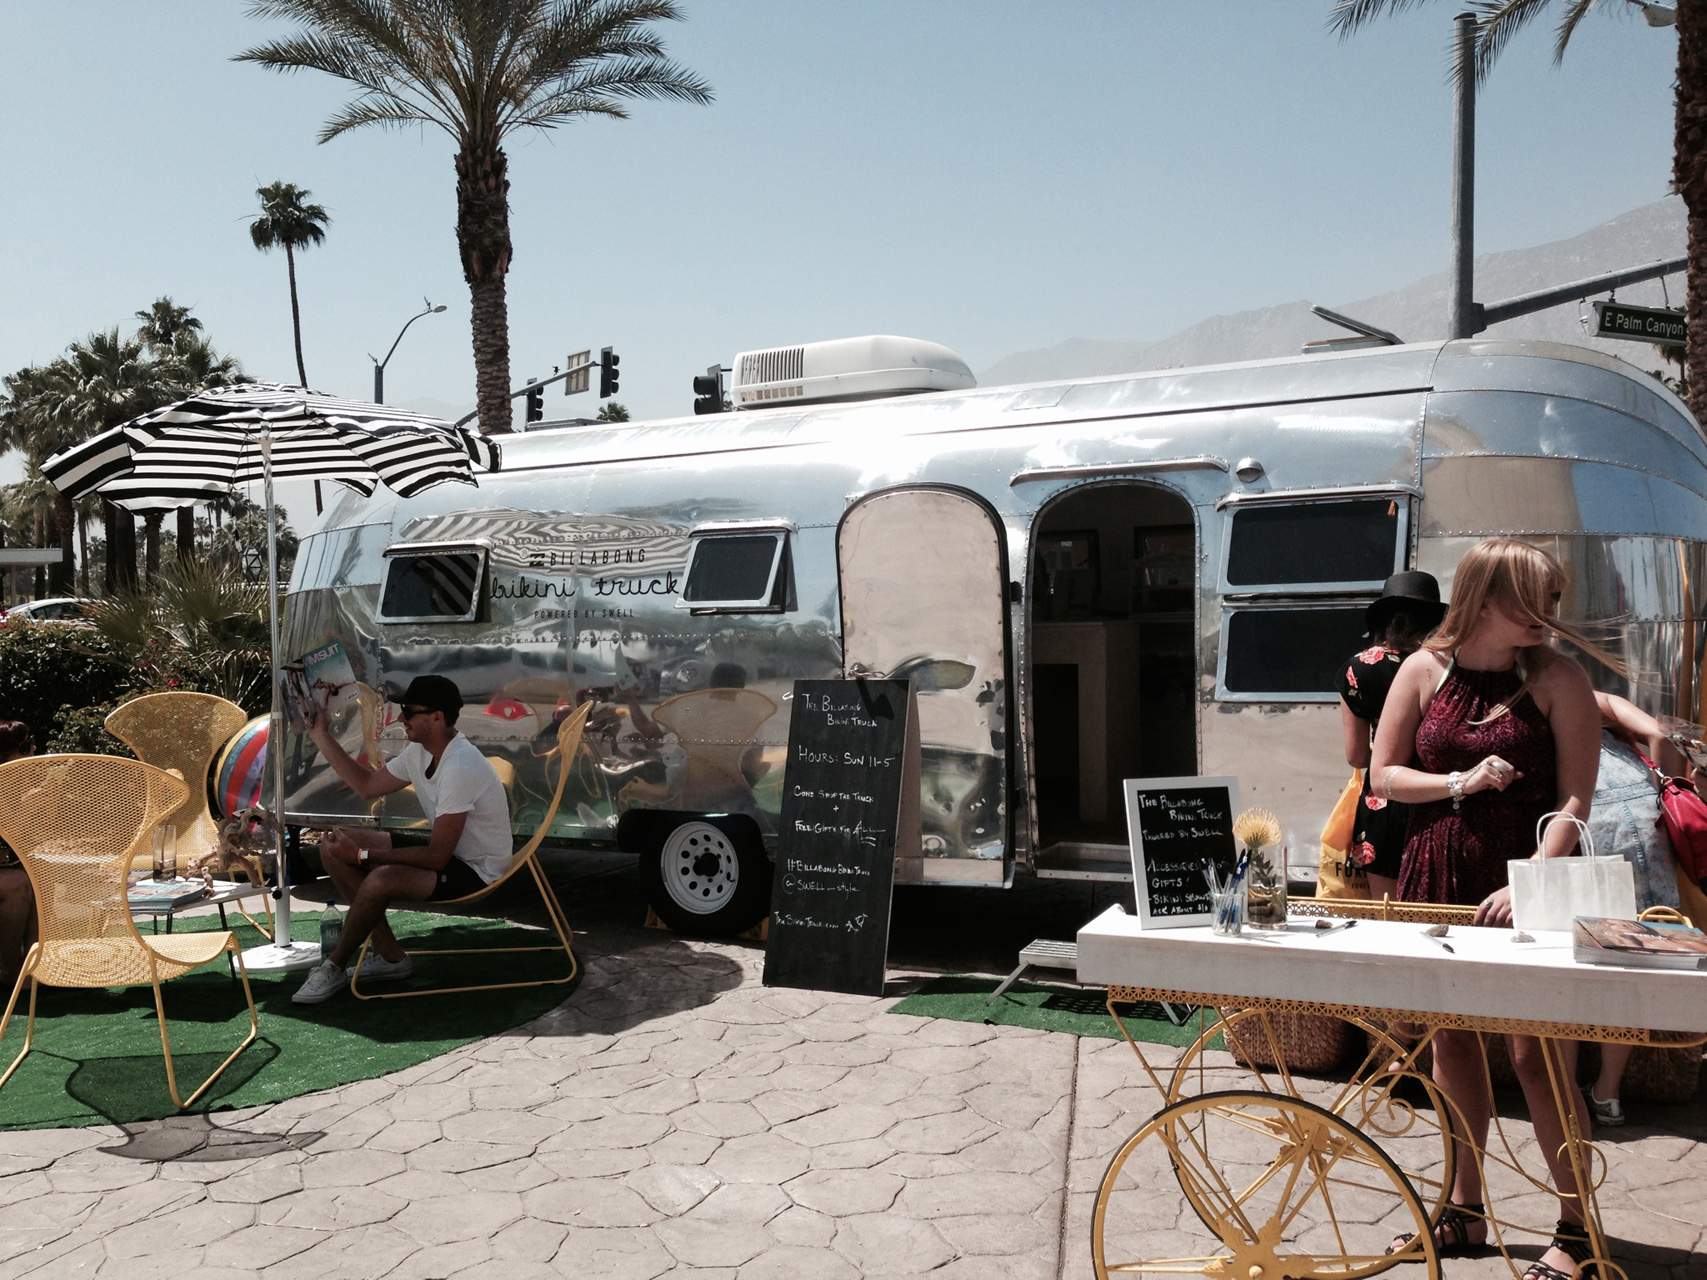 billabong bikini truck, coachella, saguaro, currently crushing